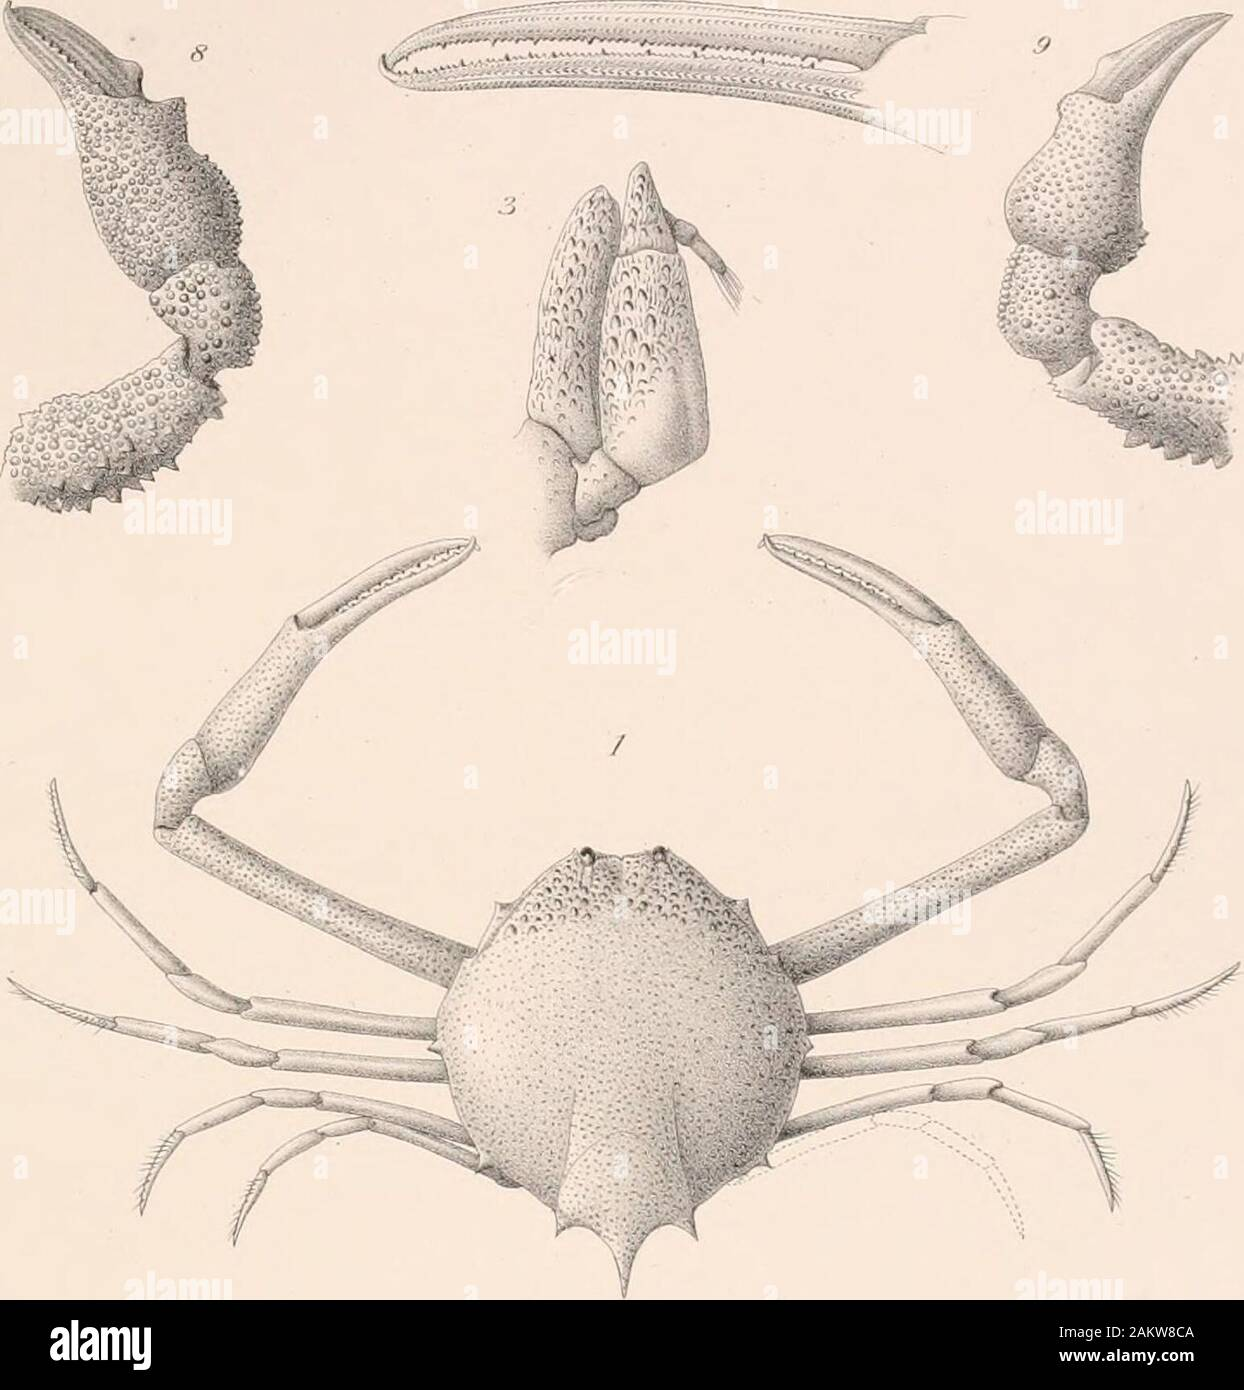 Memoirs of the Museum of Comparative Zoölogy, at Harvard College, Cambridge, Mass . E L Bouvier ad natd«I- Myropsis ooliath (1-3). Myropsis constricta (4-6). B Mesel in Bistpi PLAXCHE XXII. Myropsis coustricta A. Milne Edwakds. Fig. 1. Uii exemplaire male, face dorsale; Gr. IJ. Fig. 2. Eegion cephalique, face ventrale; Gr. 7^. Fig. 3. Patte-machoire posterieure droite, face ventvale ; Gr. 4. Fig. 4. Extremite de la pince gauche, face externa; Gr. 4. Fig. 5. Abdomen duu male, face exterue ; Gr. 2. Lithadia rotundata A. Milne Edwaih)s. Fig. 6. Region cephalique dune femelle, face ventrale ; Gr. Stock Photo